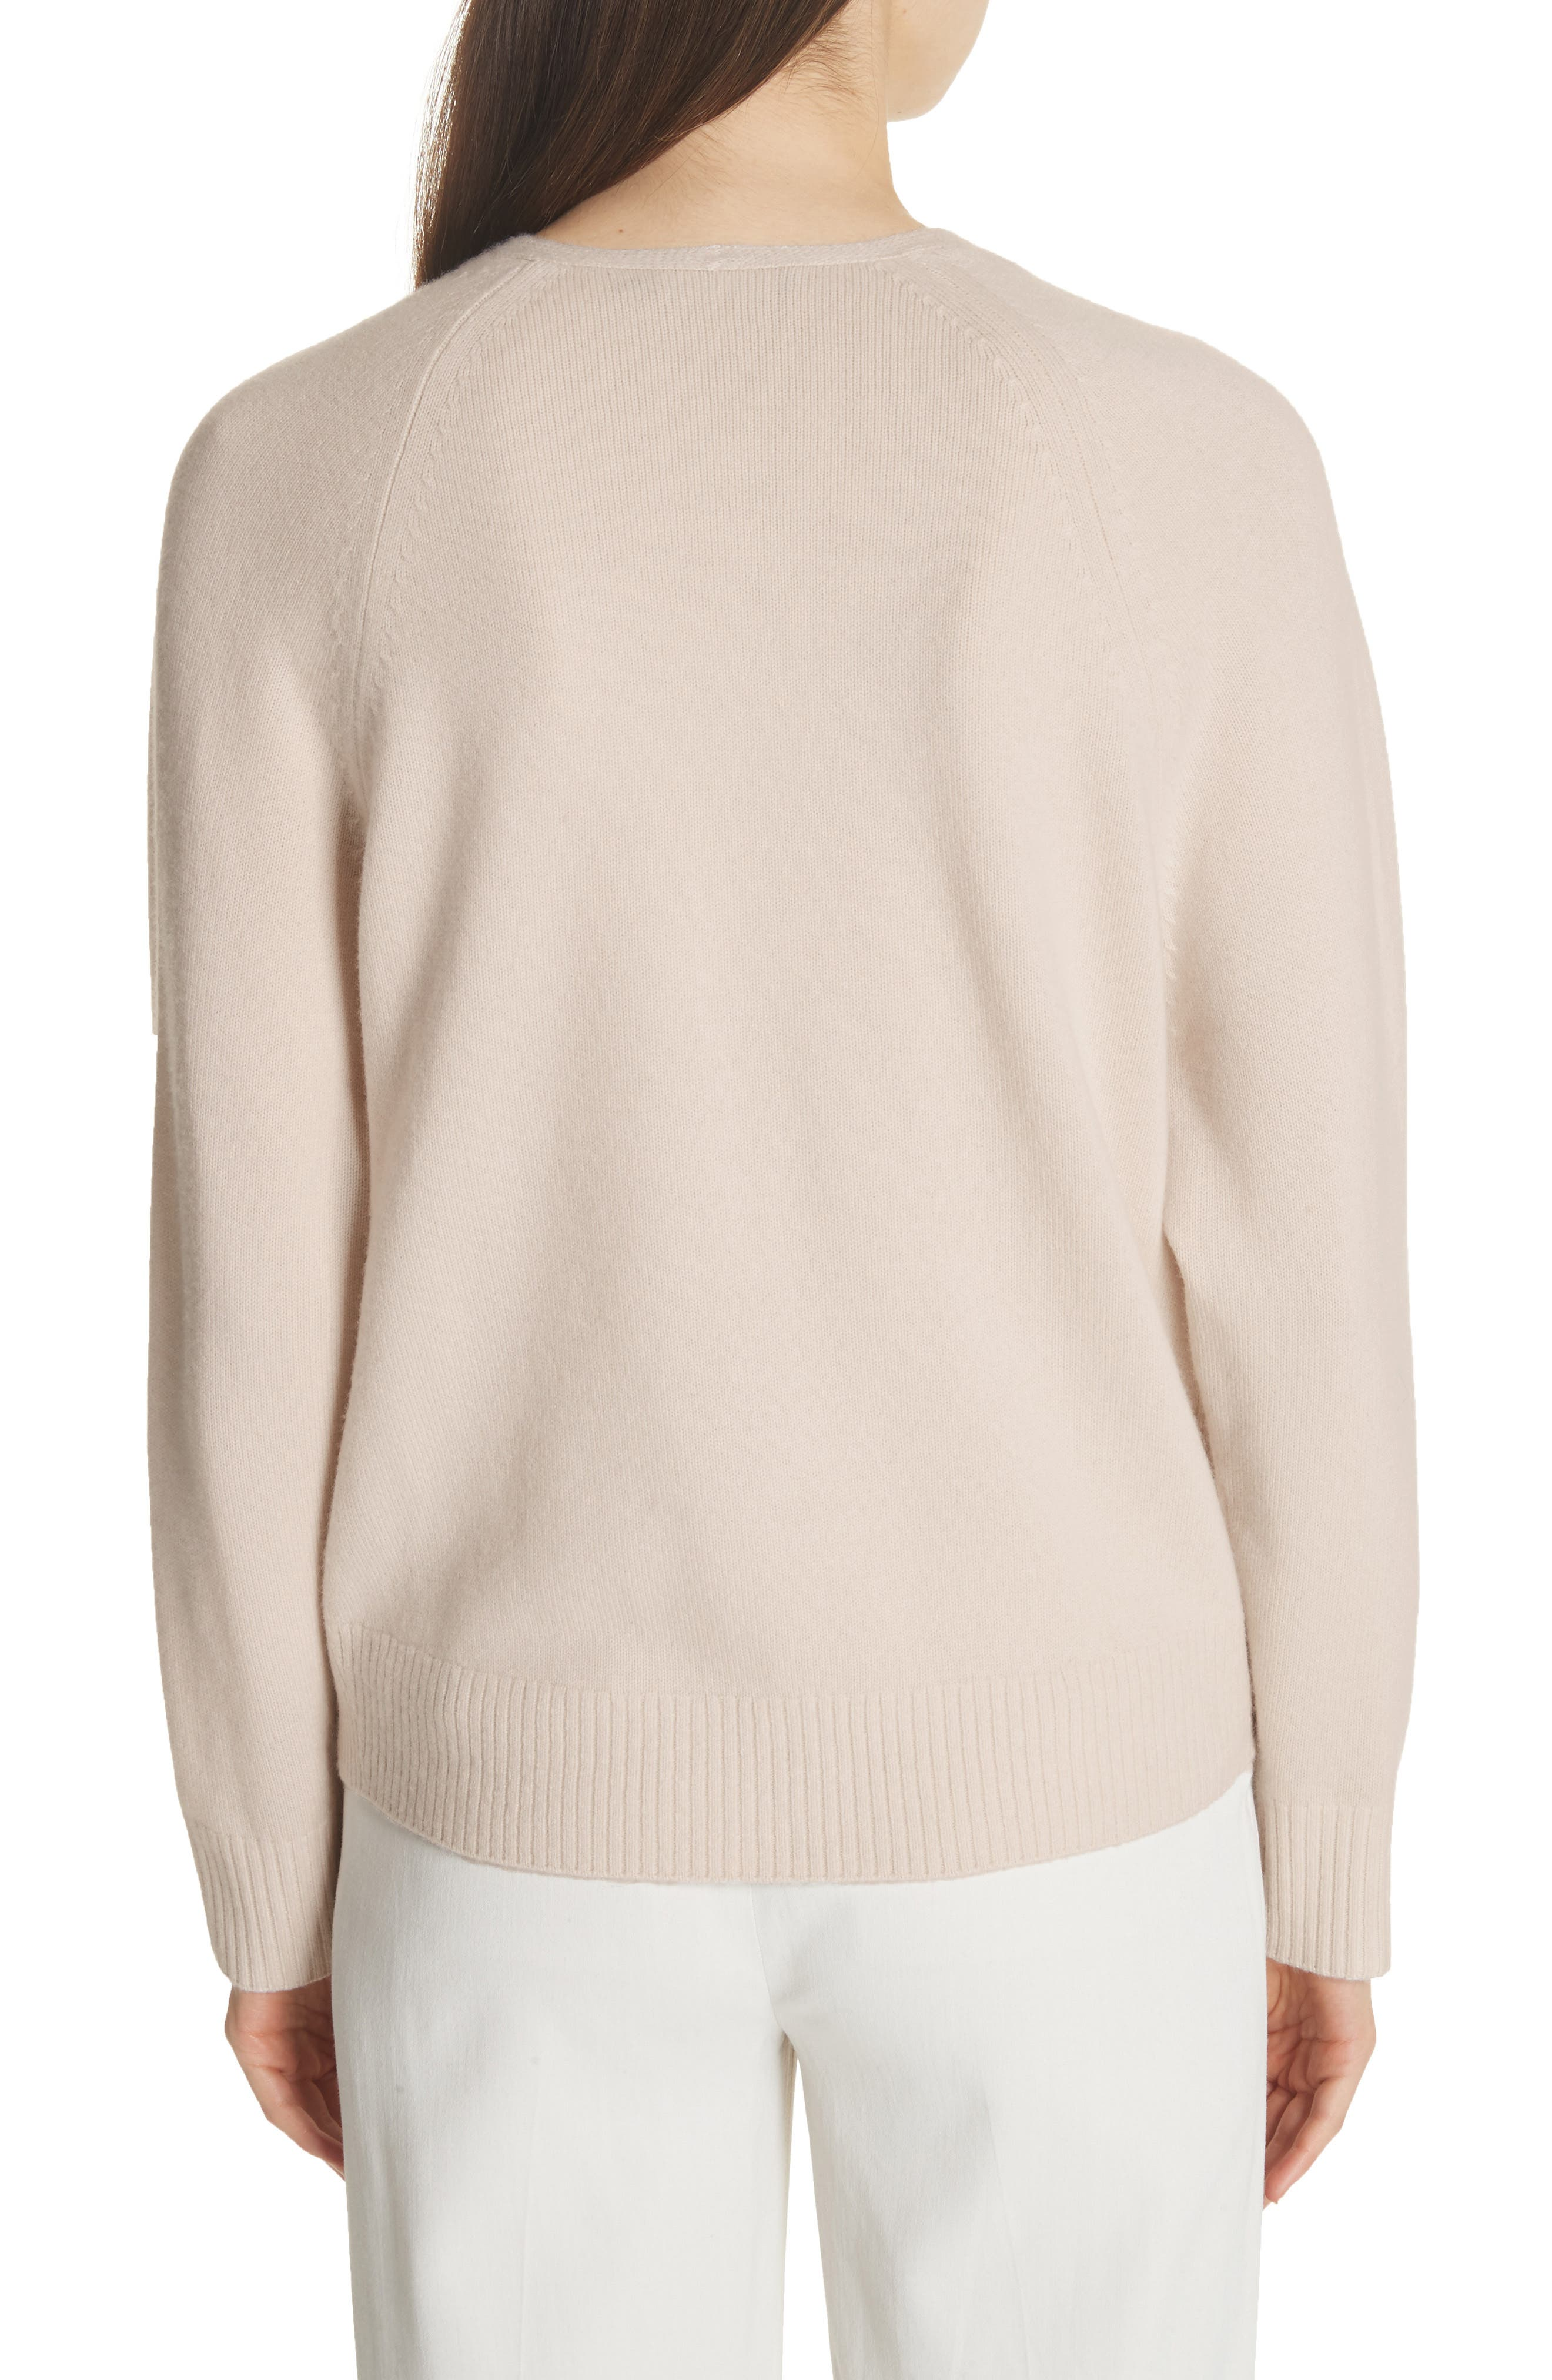 Cashmere Raglan Sleeve Sweater,                             Alternate thumbnail 2, color,                             SANDSTONE